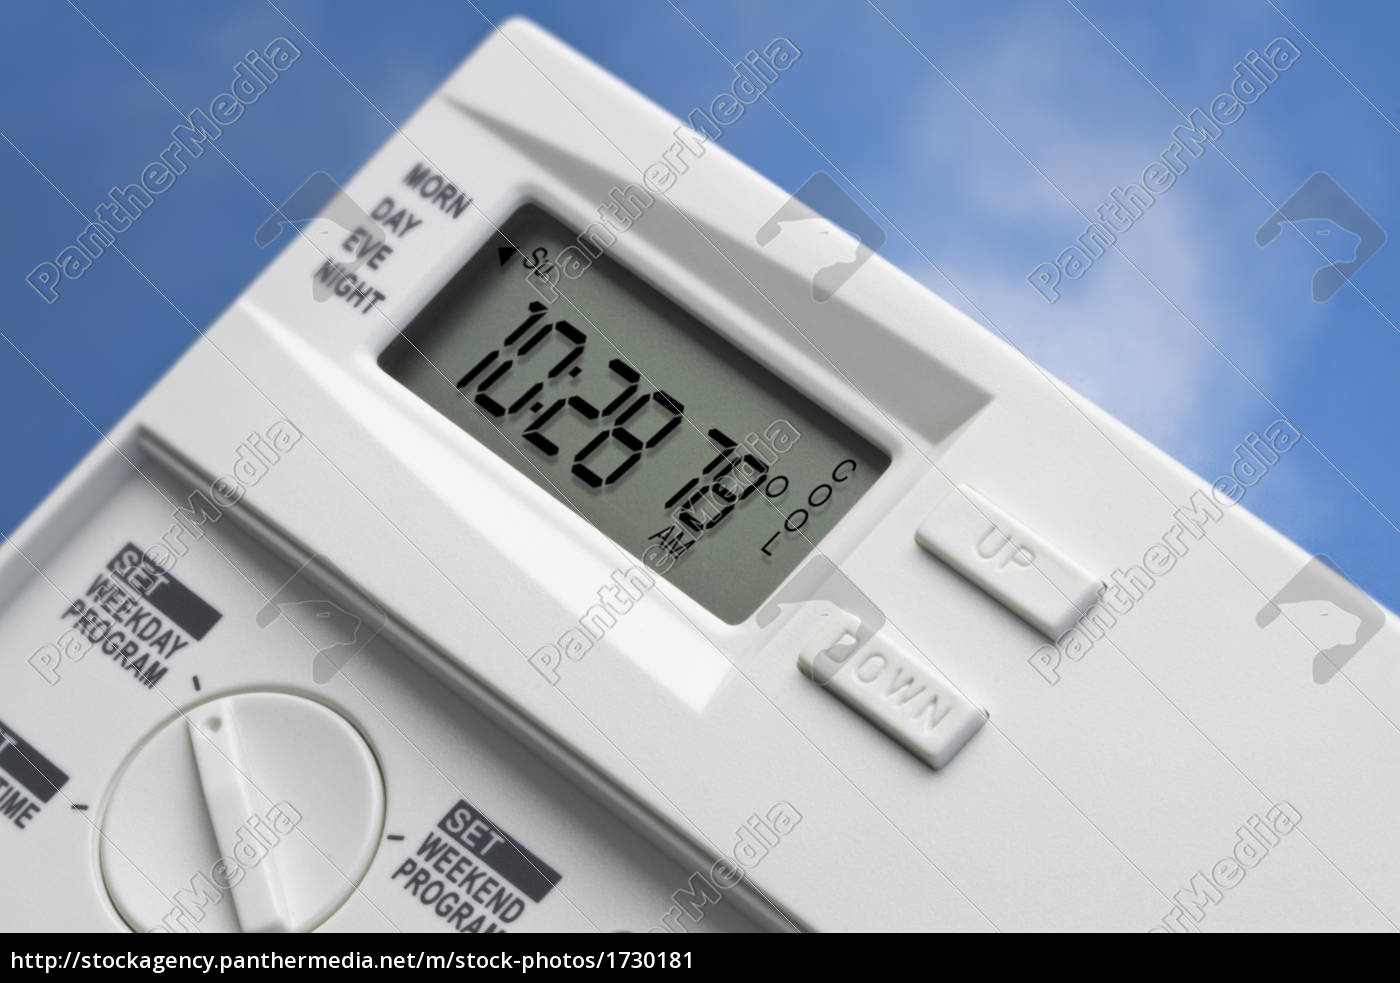 sky, thermostat, 78, degrees, cool, v2 - 1730181